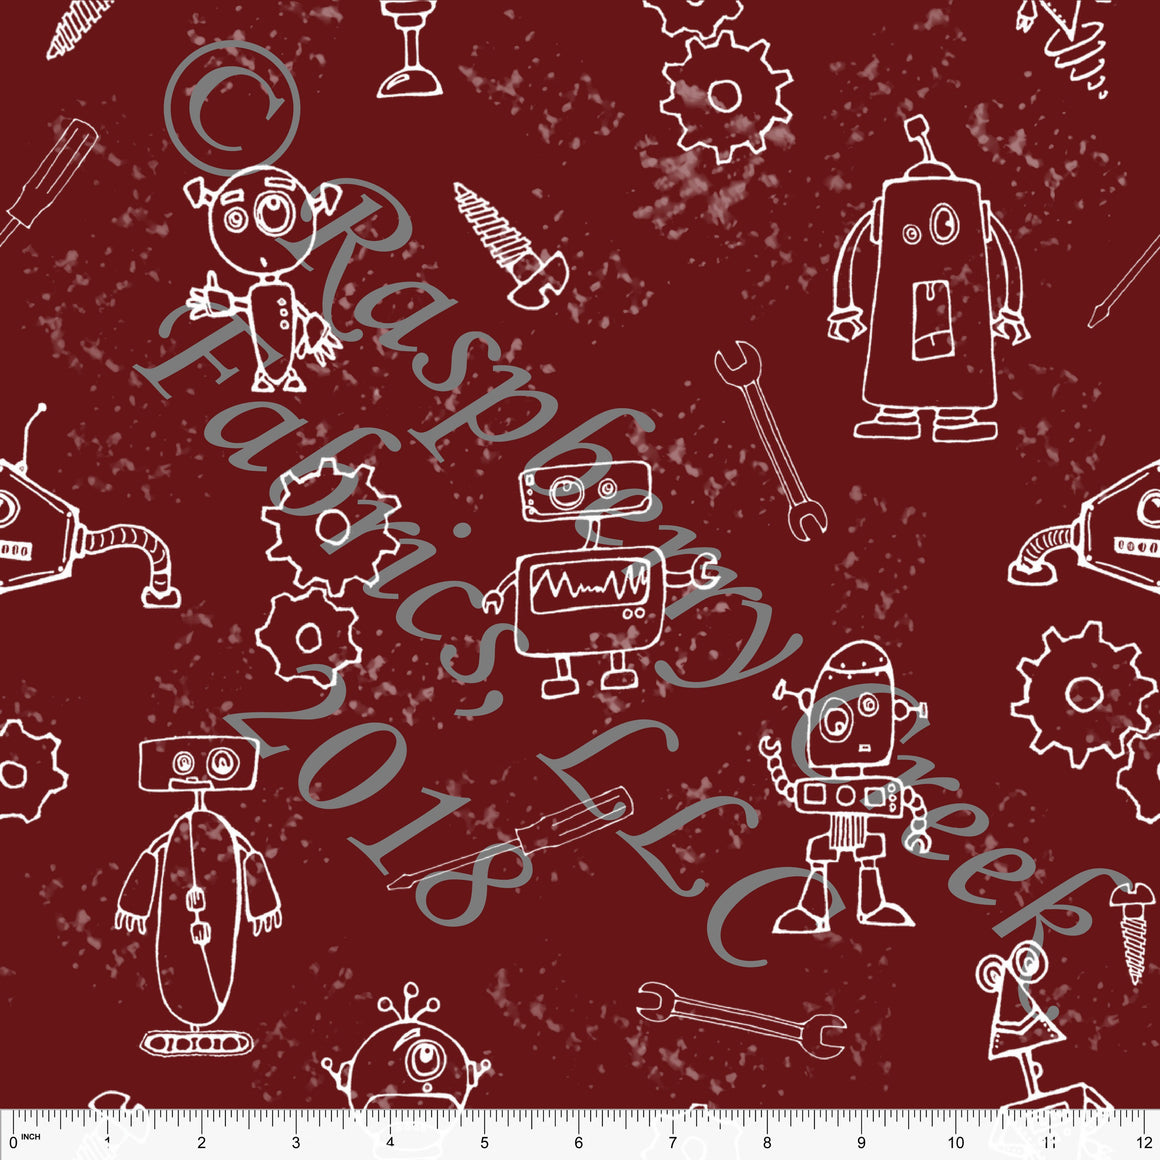 Burgundy and White Robot Splatter 4 Way Stretch Double Brushed Poly Knit Fabric, By Elise Peterson for CLUB Fabrics